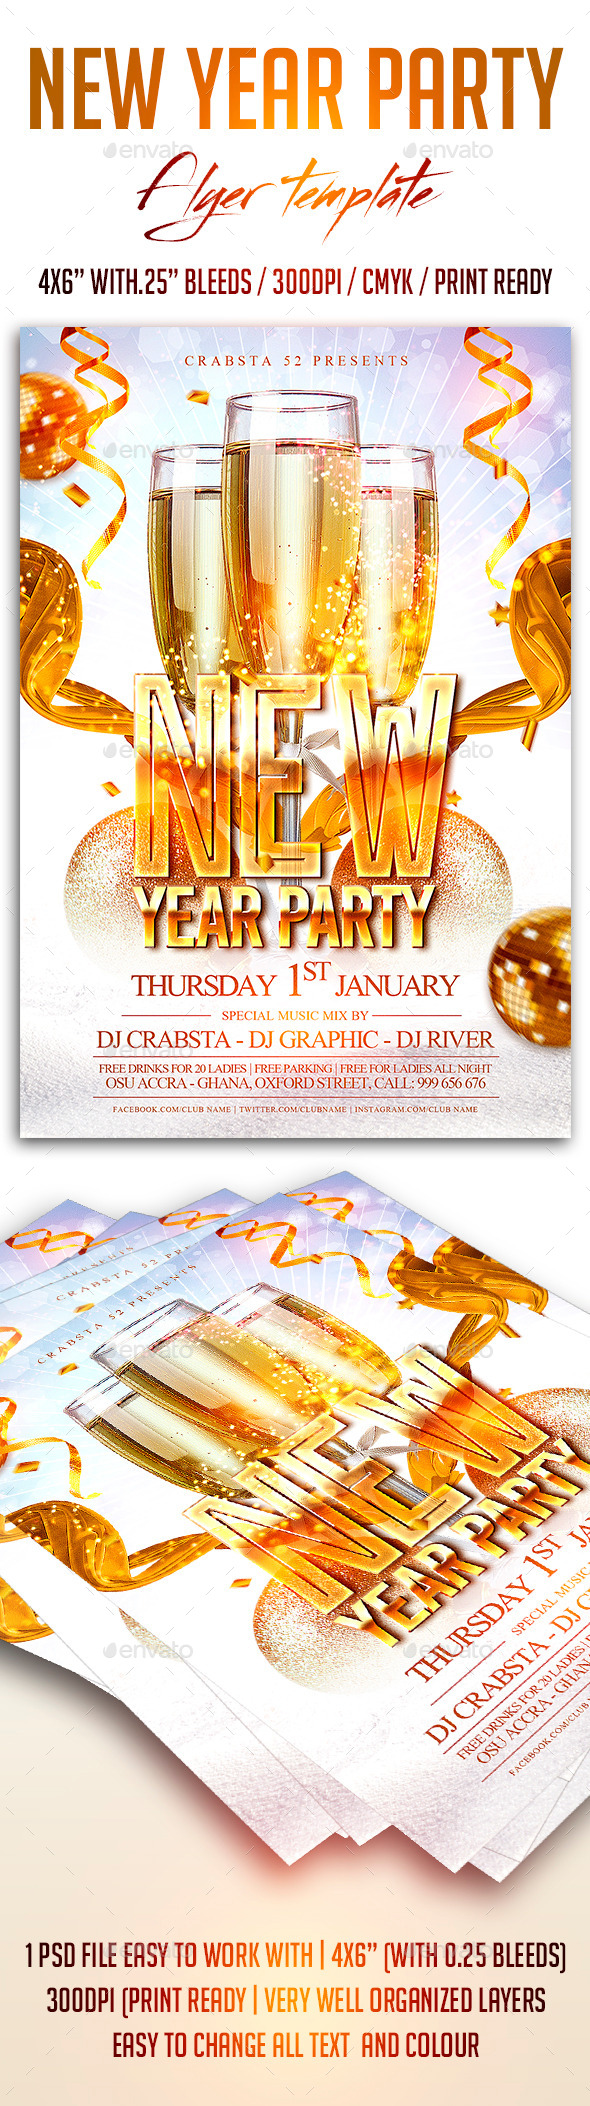 New Year Party Flyer Template - Flyers Print Templates